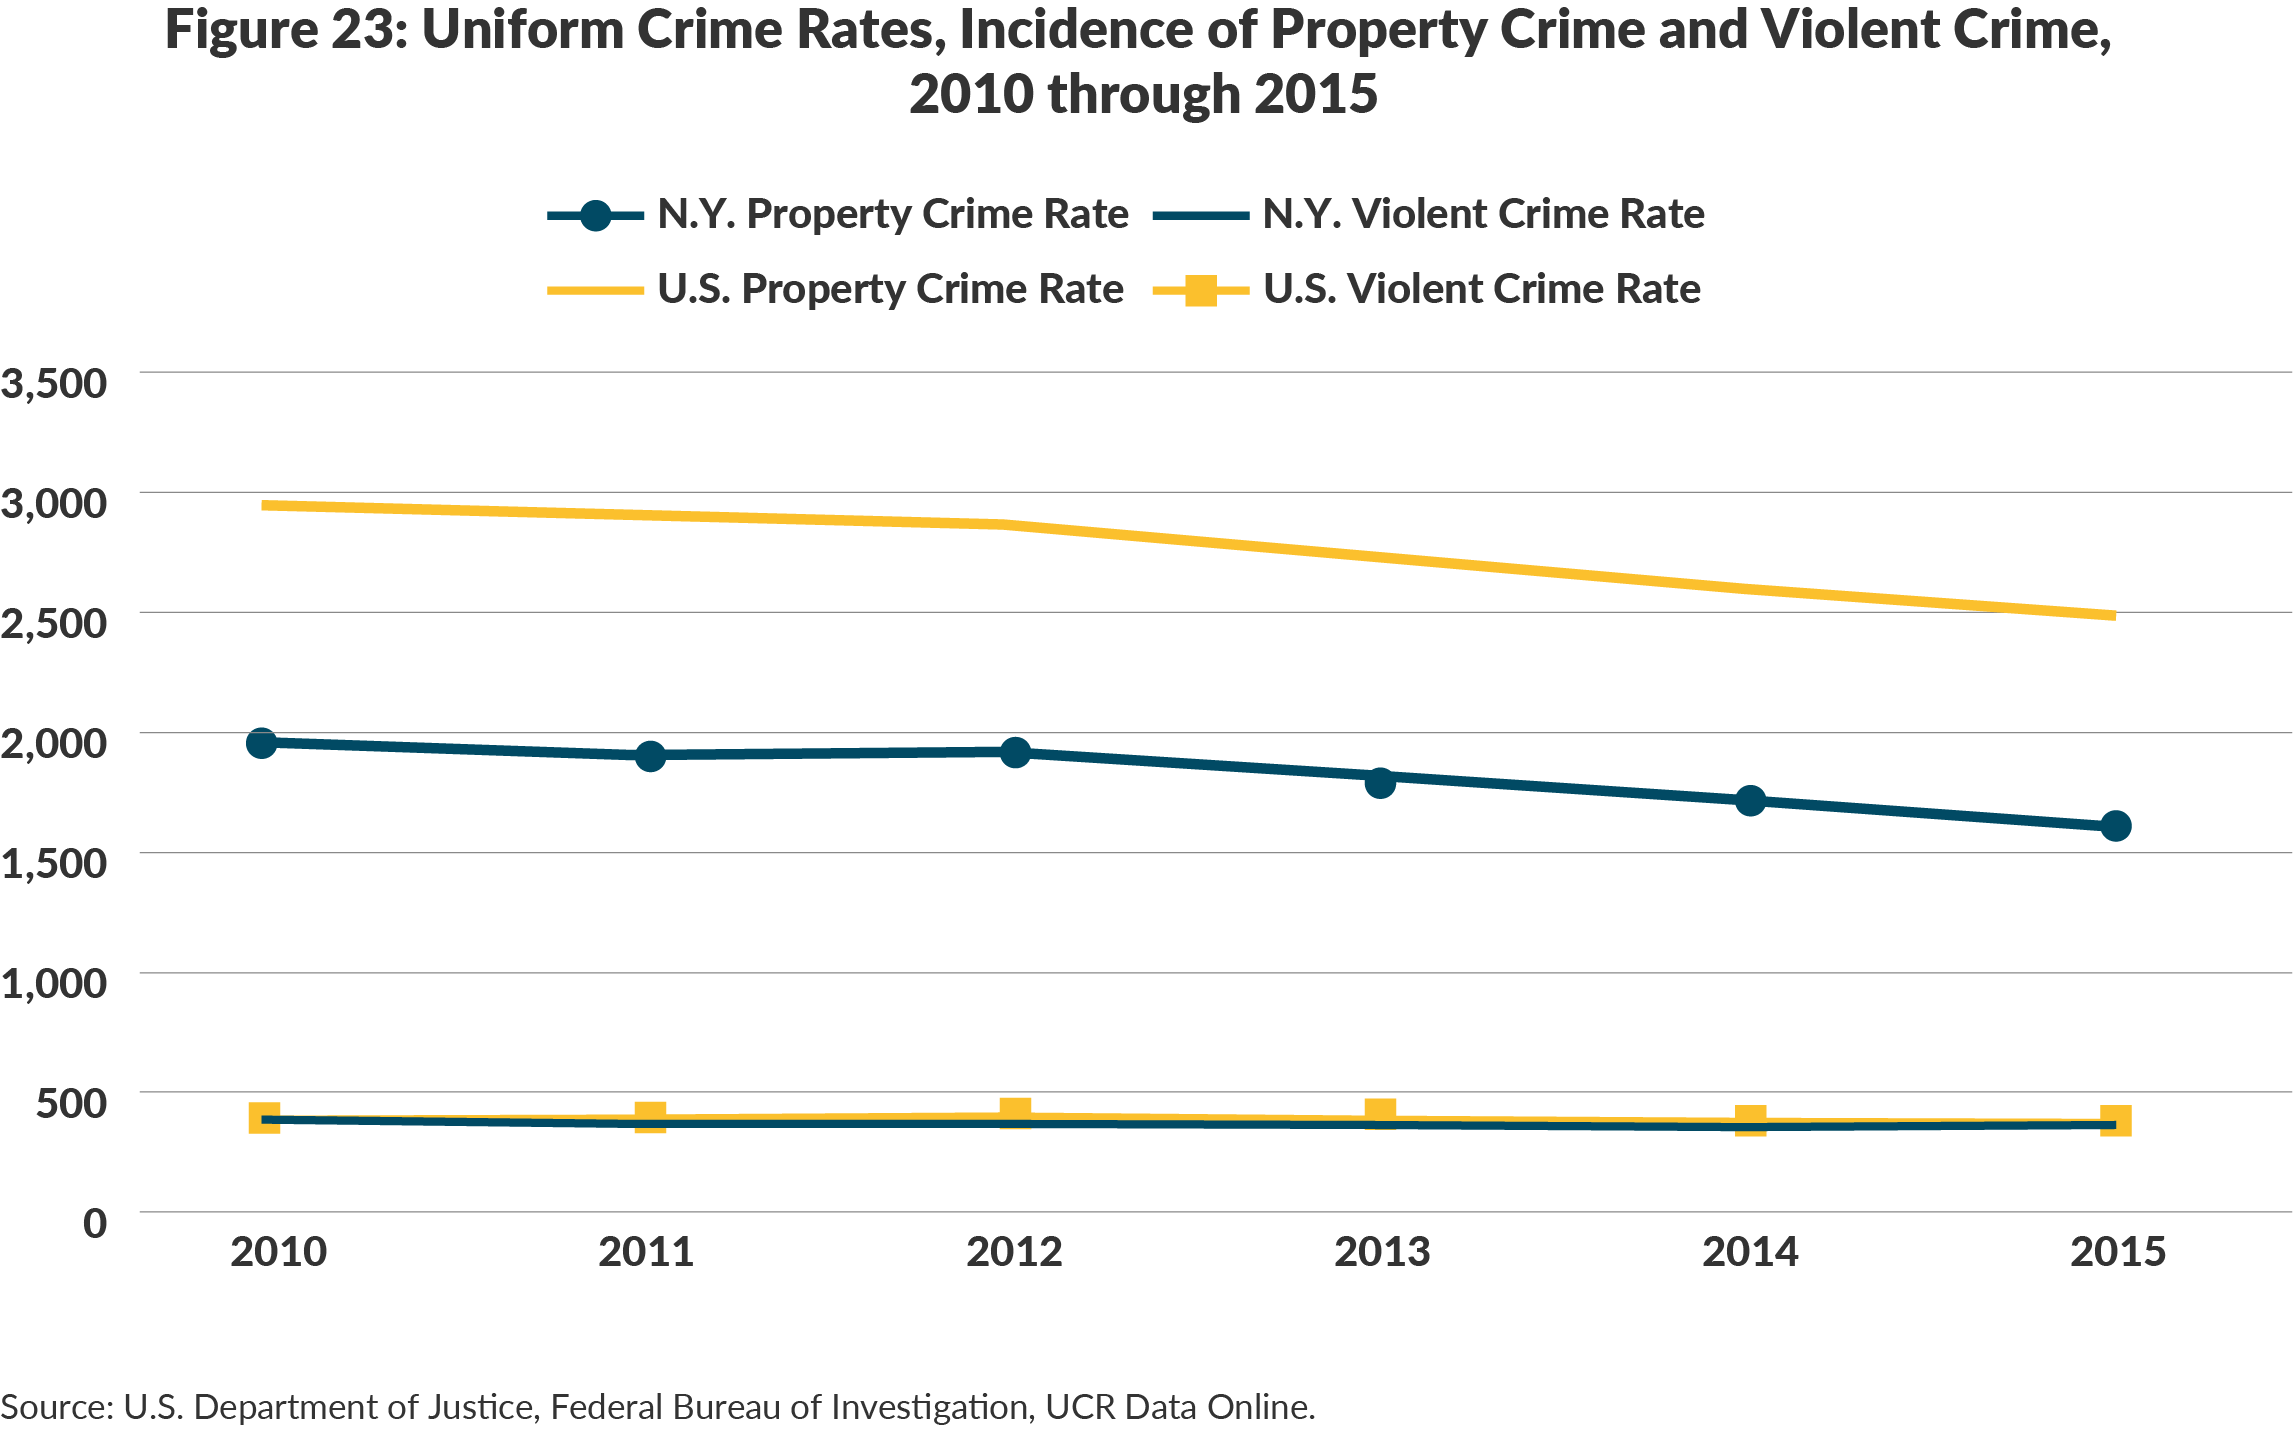 Figure 23: Uniform Crime Rates, Incidence of Property Crime and Violent Crime, 2010 through 2015